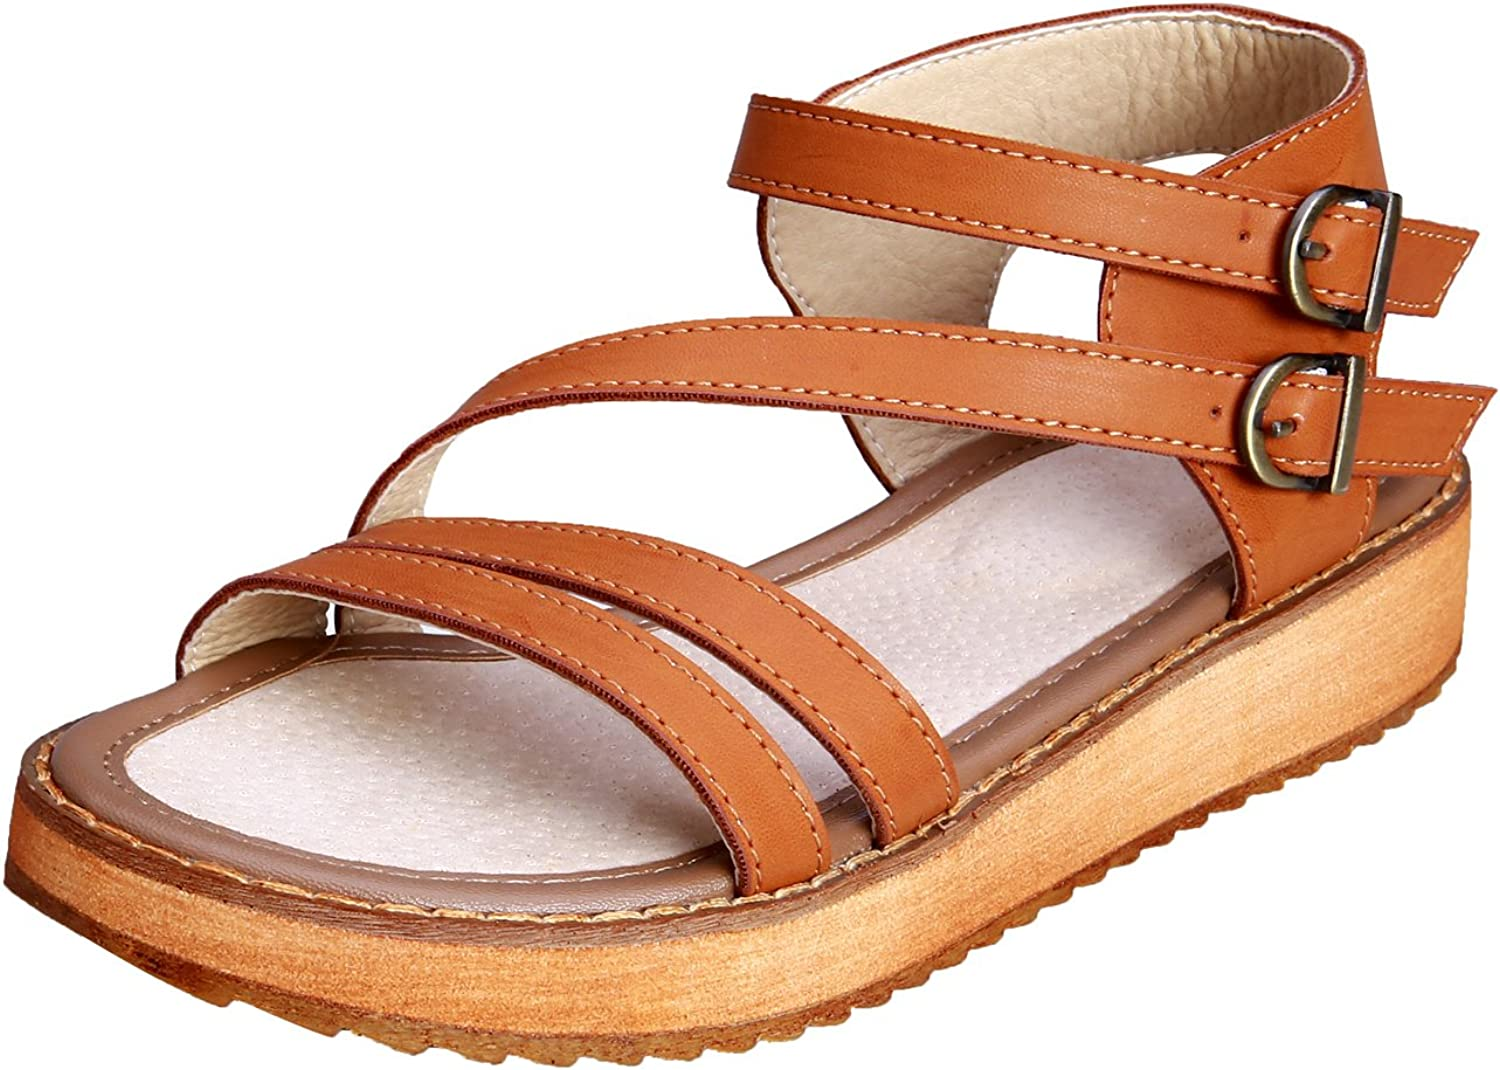 Smilun Lady's Roman Sandal shoes Open Toe Double Toe Strap Cross Strappy Gladiator Wedge Sandals